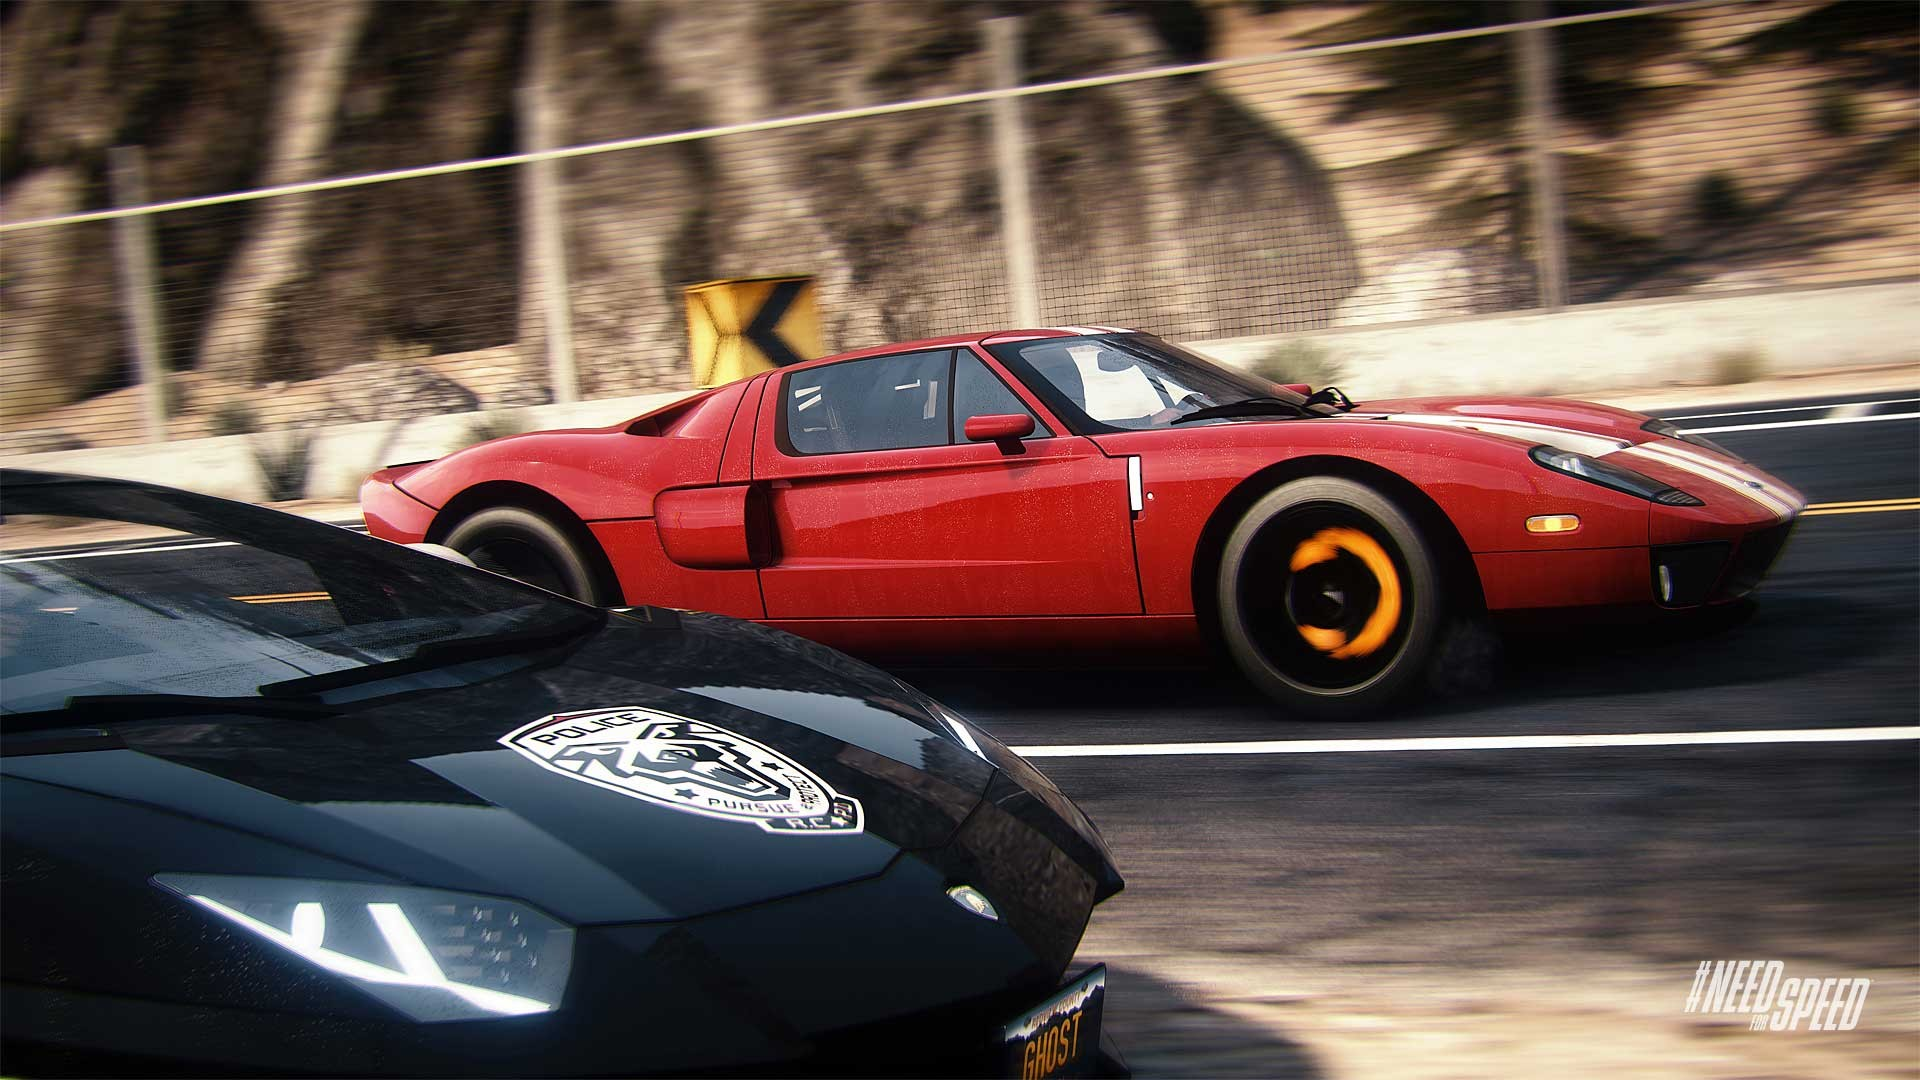 Hd Nfs Cars Wallpapers Need For Speed Rivals Review Ps3